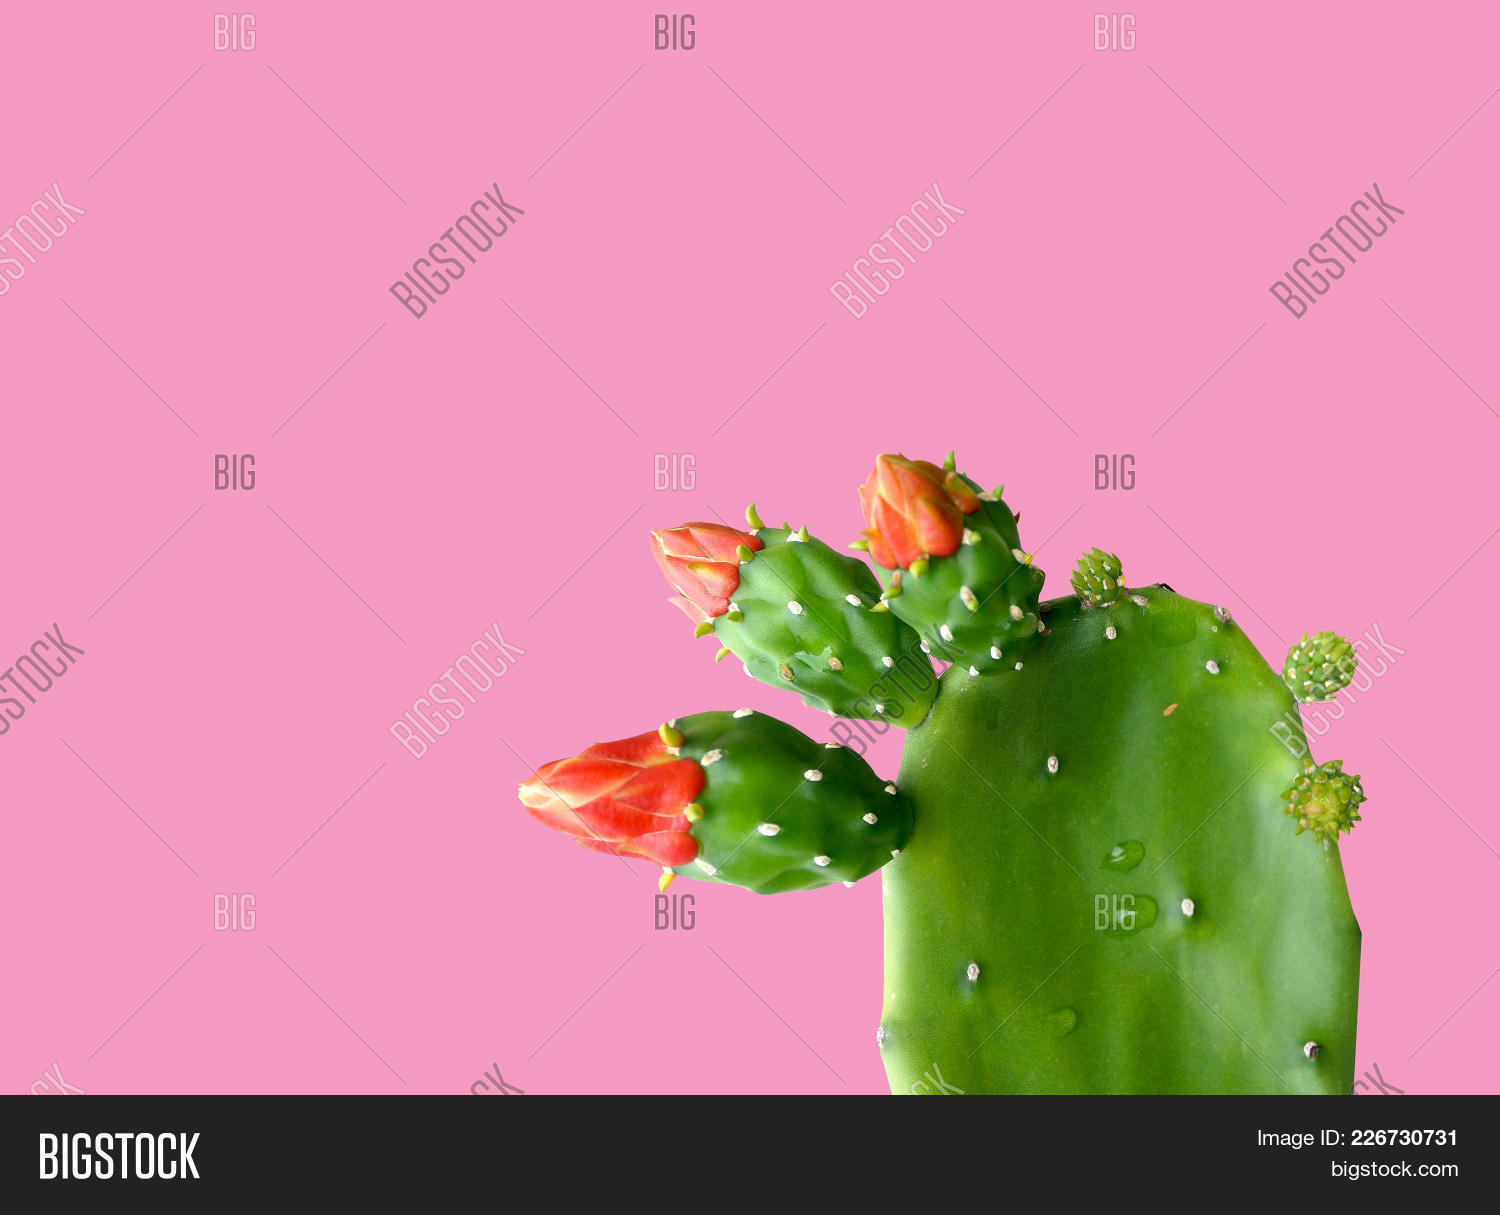 cactus plant on a pink powerpoint template cactus plant on a pink